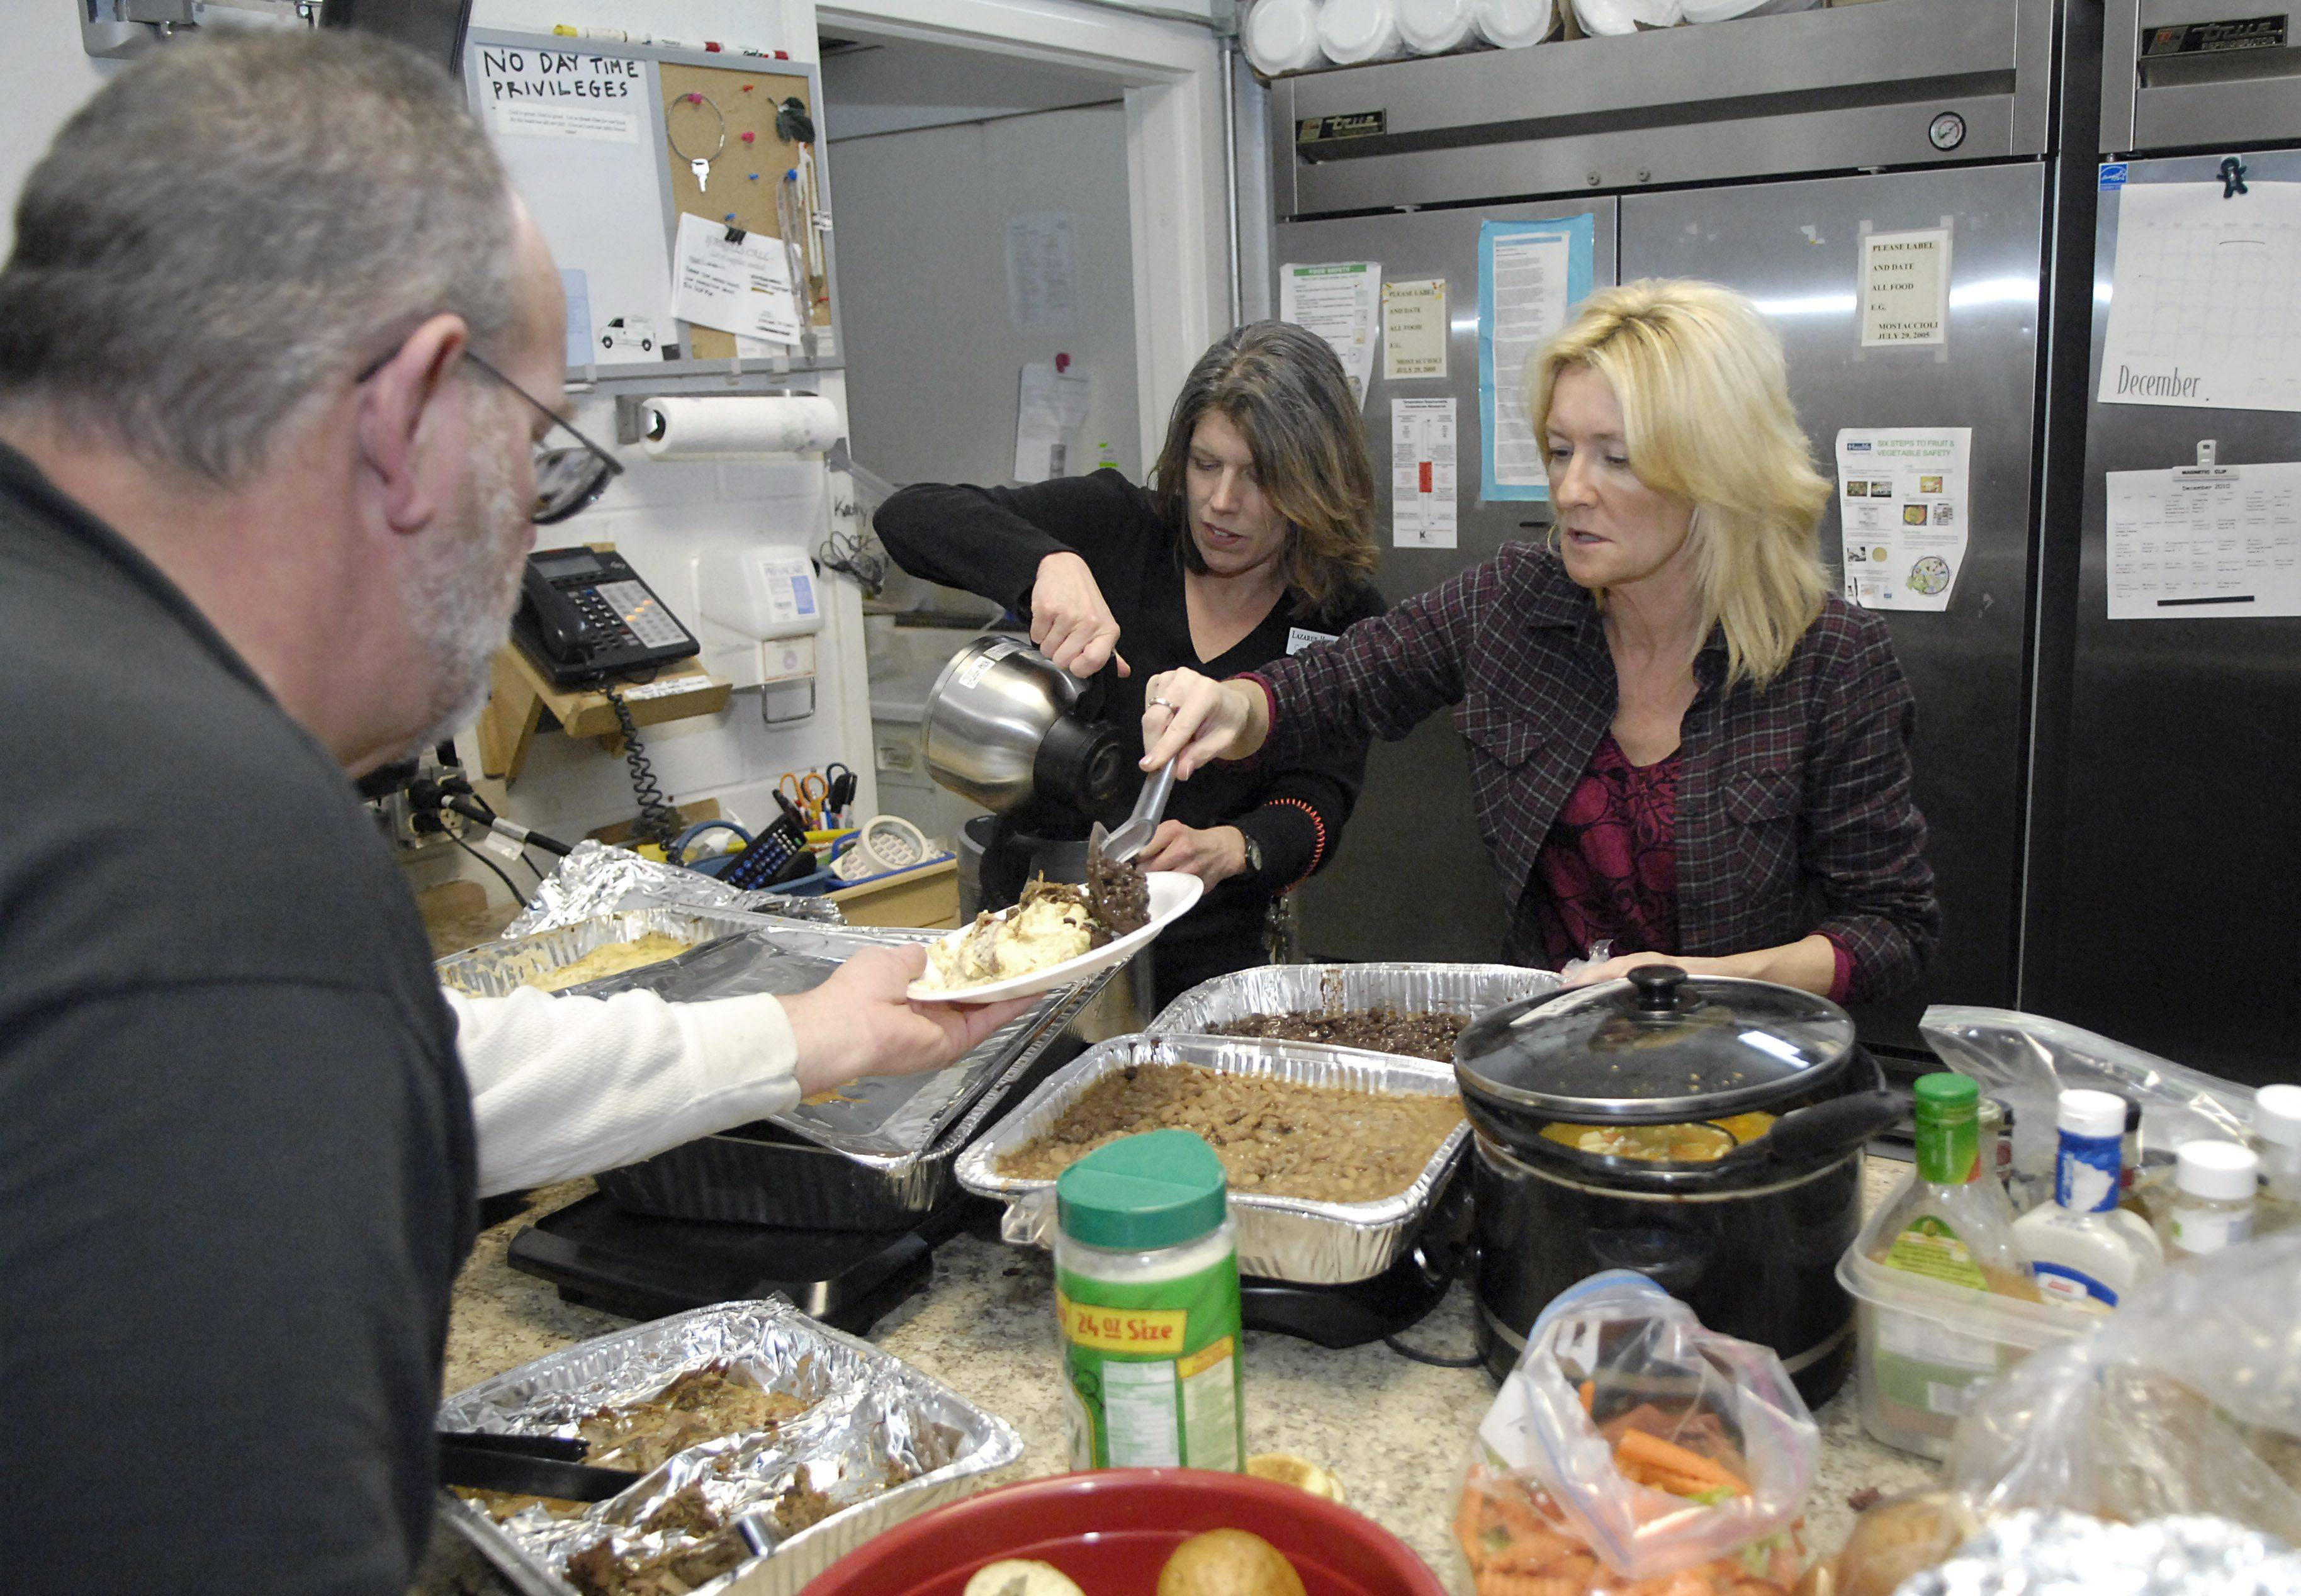 Lazarus House Operations Manager Carol Migacz, left, and volunteer Lisa Drummond help serve lunch at the homeless shelter in St. Chalres on Thursday, December 9. At least a dozen people were on hand for the start of lunch and a few more filtered in as the lunch hour went on.